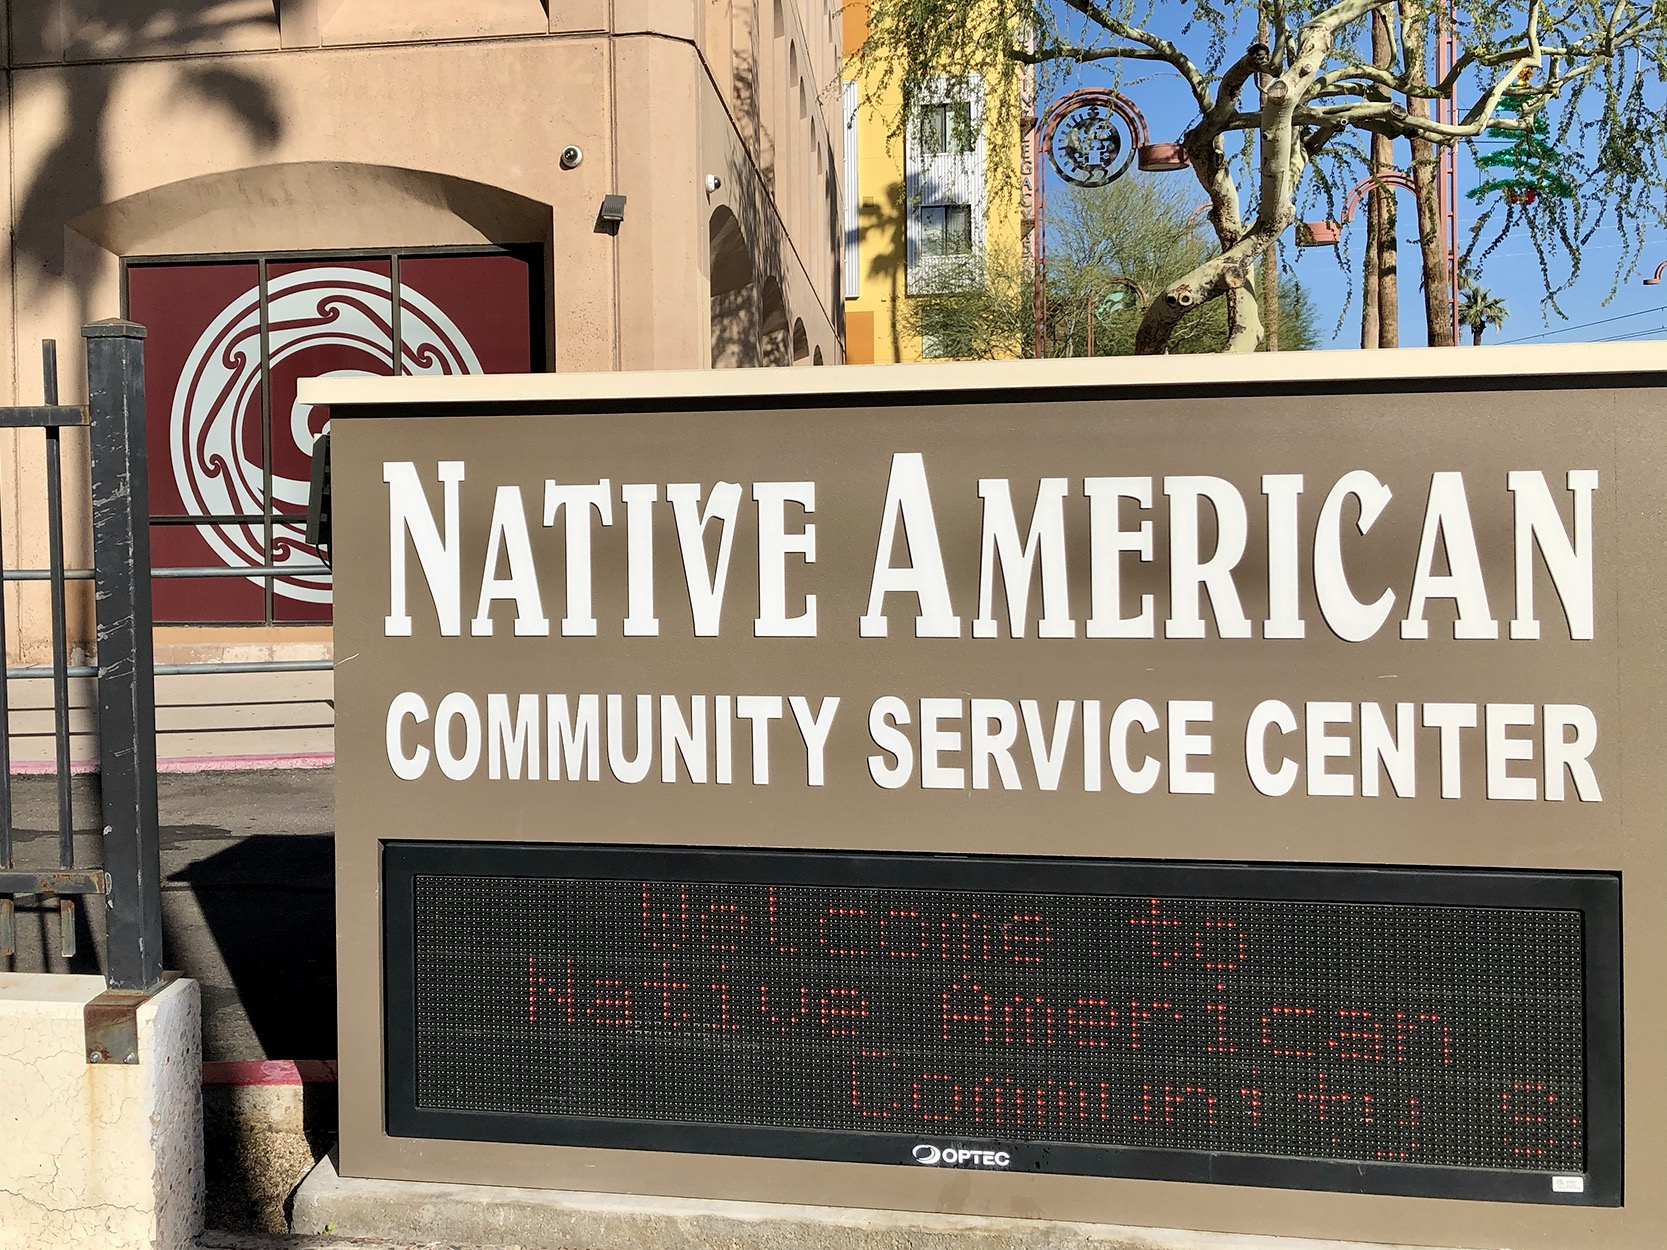 Native American leaders determined to avoid repeat of last census undercount